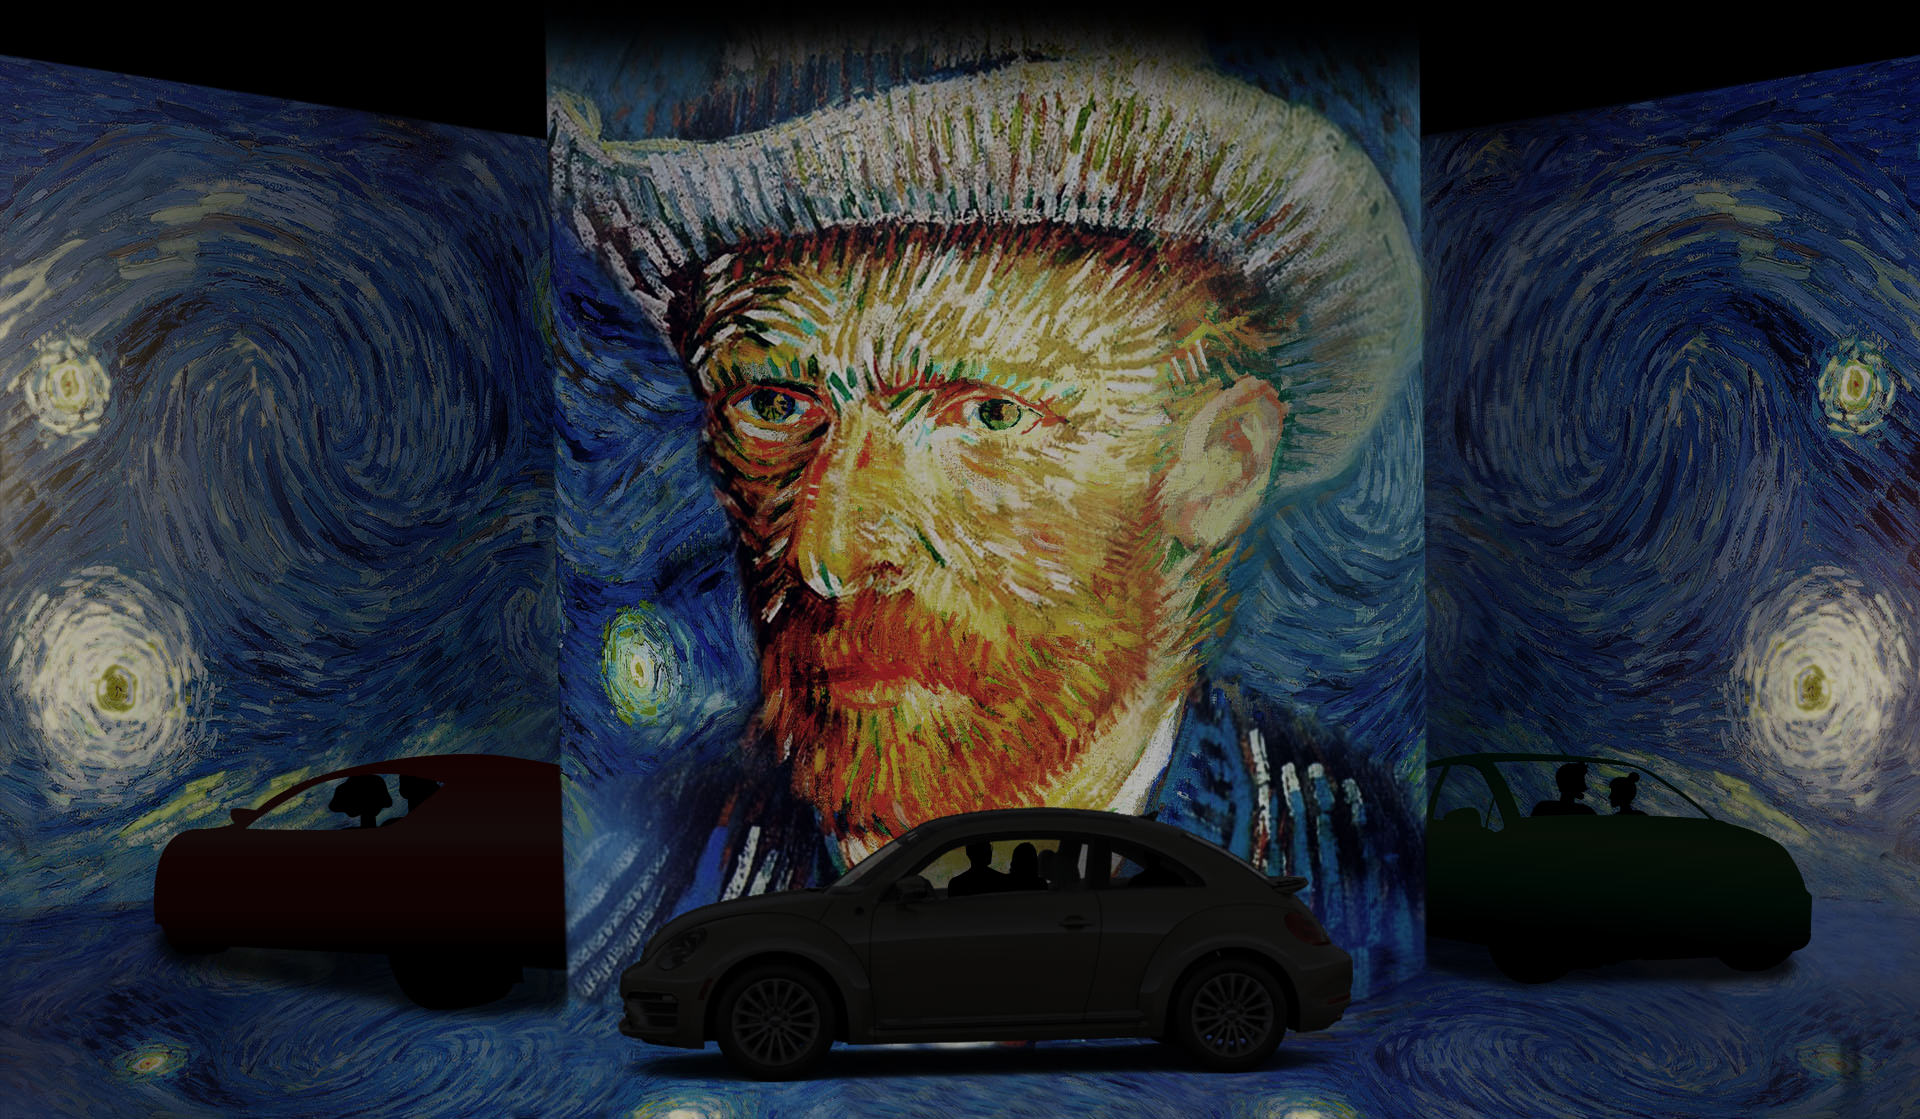 Drive & Gogh: Immersive Van Gogh Announces World's First Drive-In Digital Art Exhibition